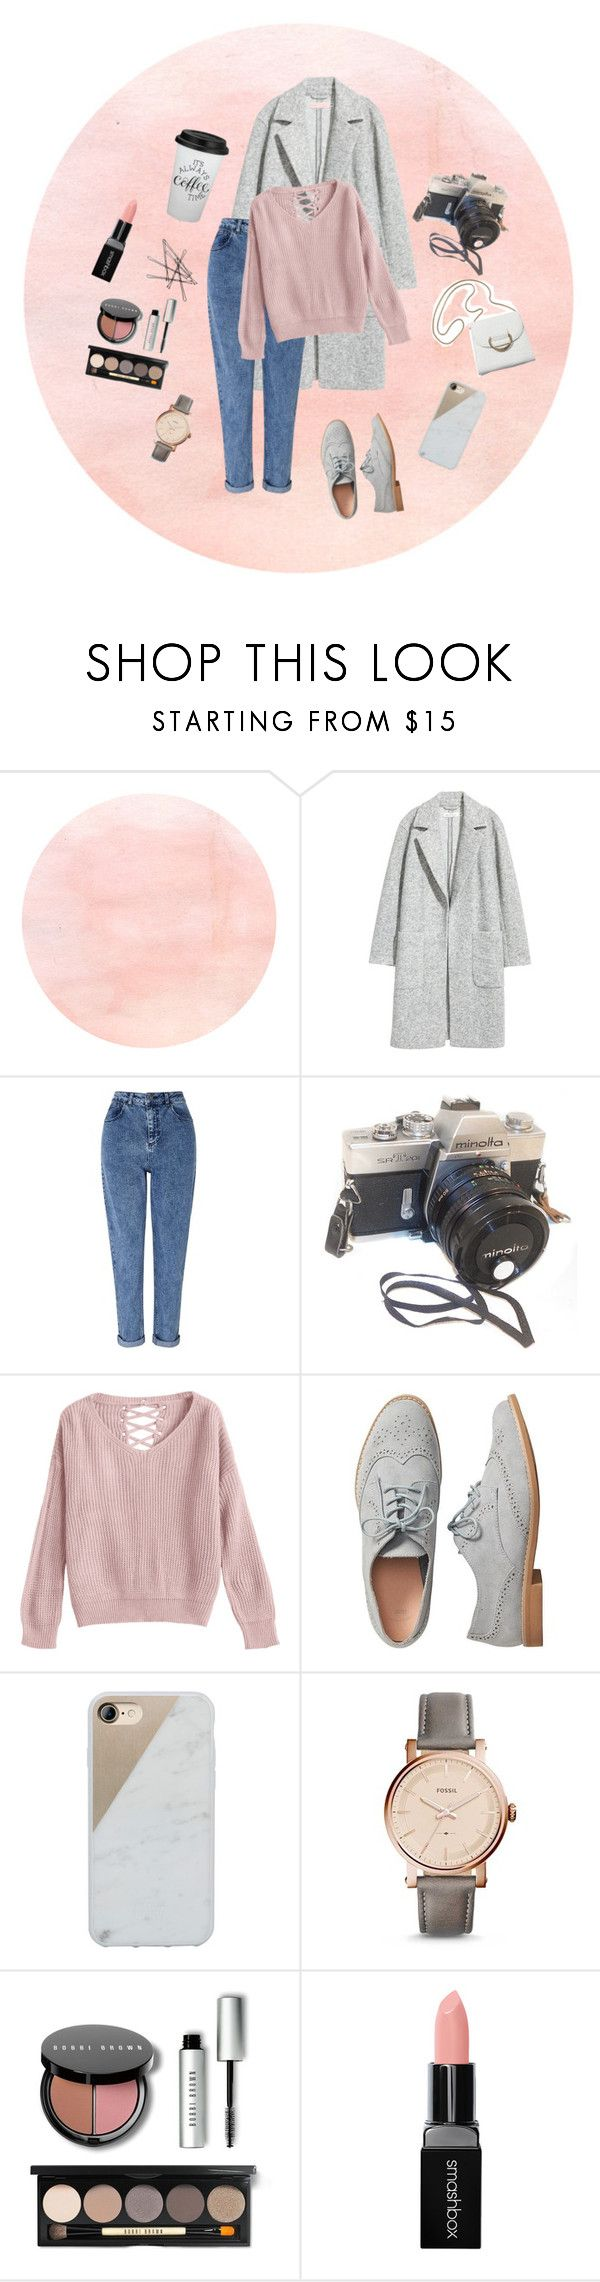 """Untitled #66"" by dilya-300542 ❤ liked on Polyvore featuring H&M, Miss Selfridge, Gap, Native Union, FOSSIL, Bobbi Brown Cosmetics and Smashbox"